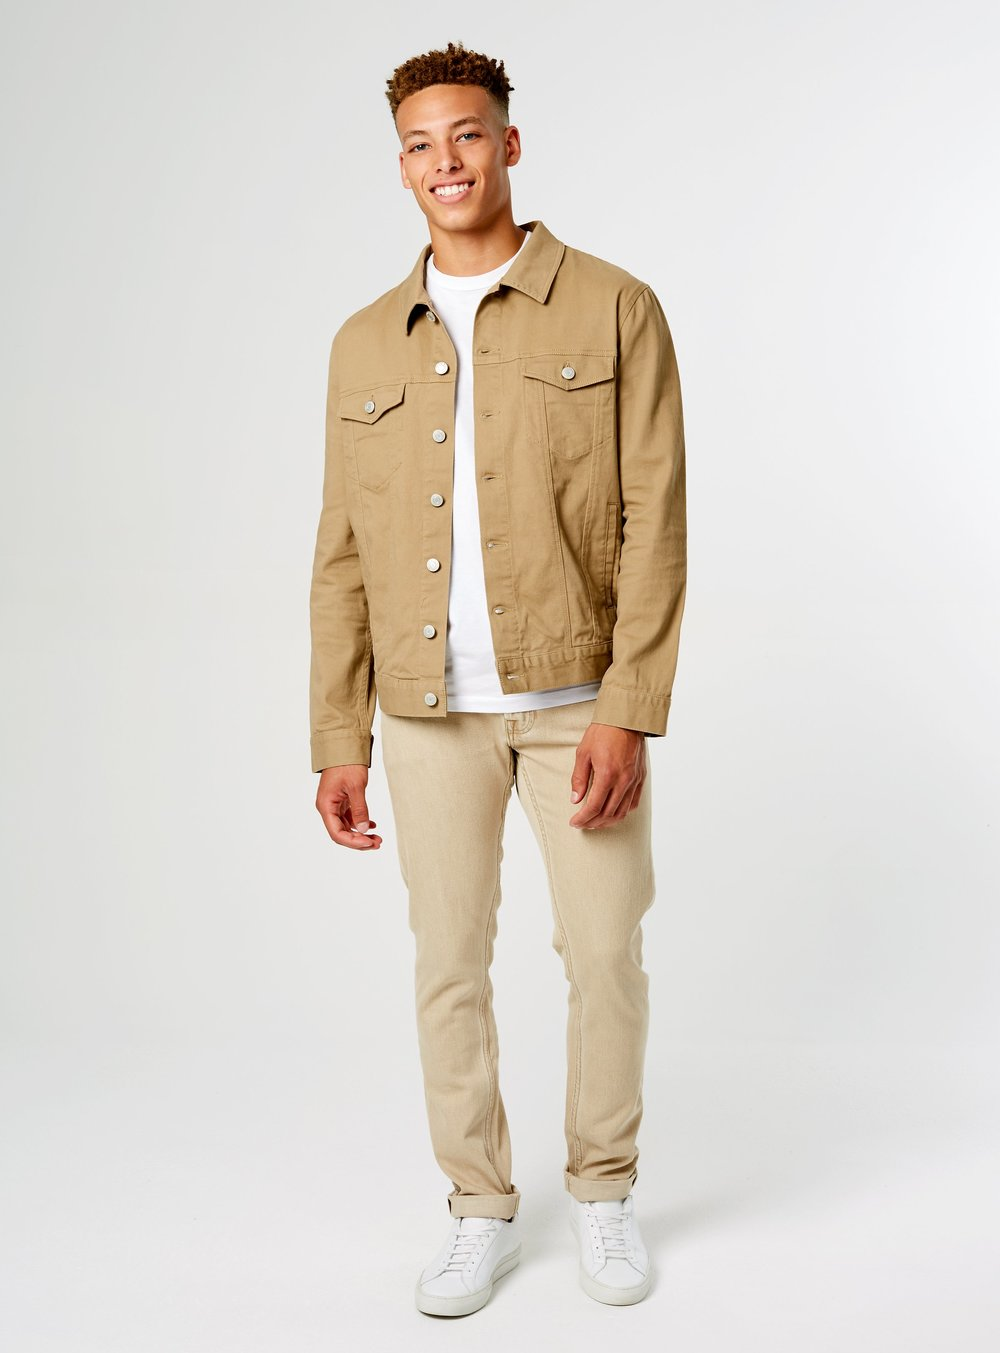 FASHION_MAN-JACKET-SKDJ-1011-ALMOND-1_2400x.jpg